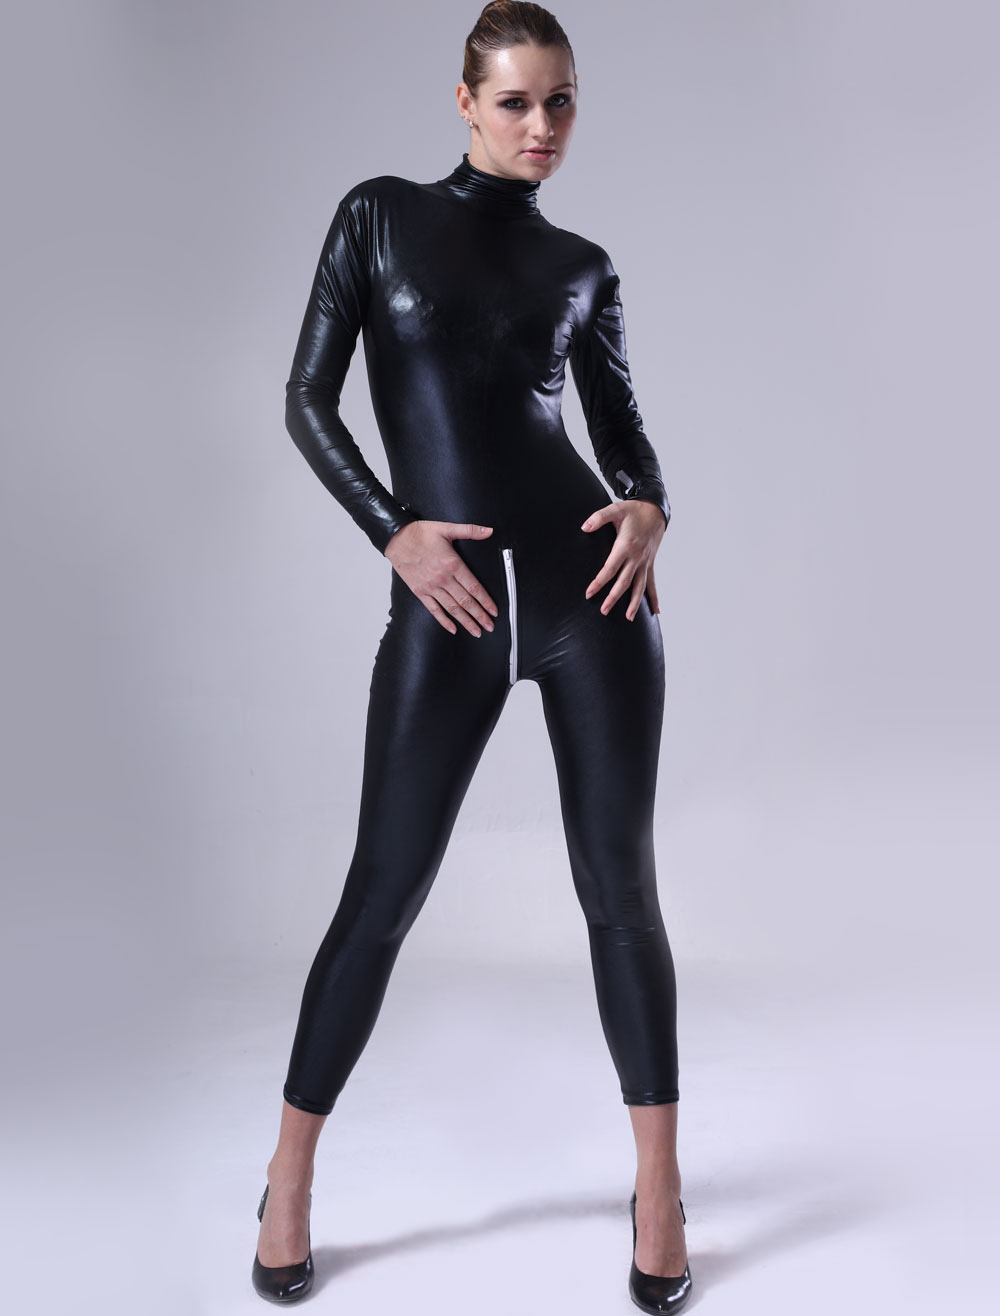 Black Women Catsuit Shiny Metallic Halloween Costume Cosplay Halloween